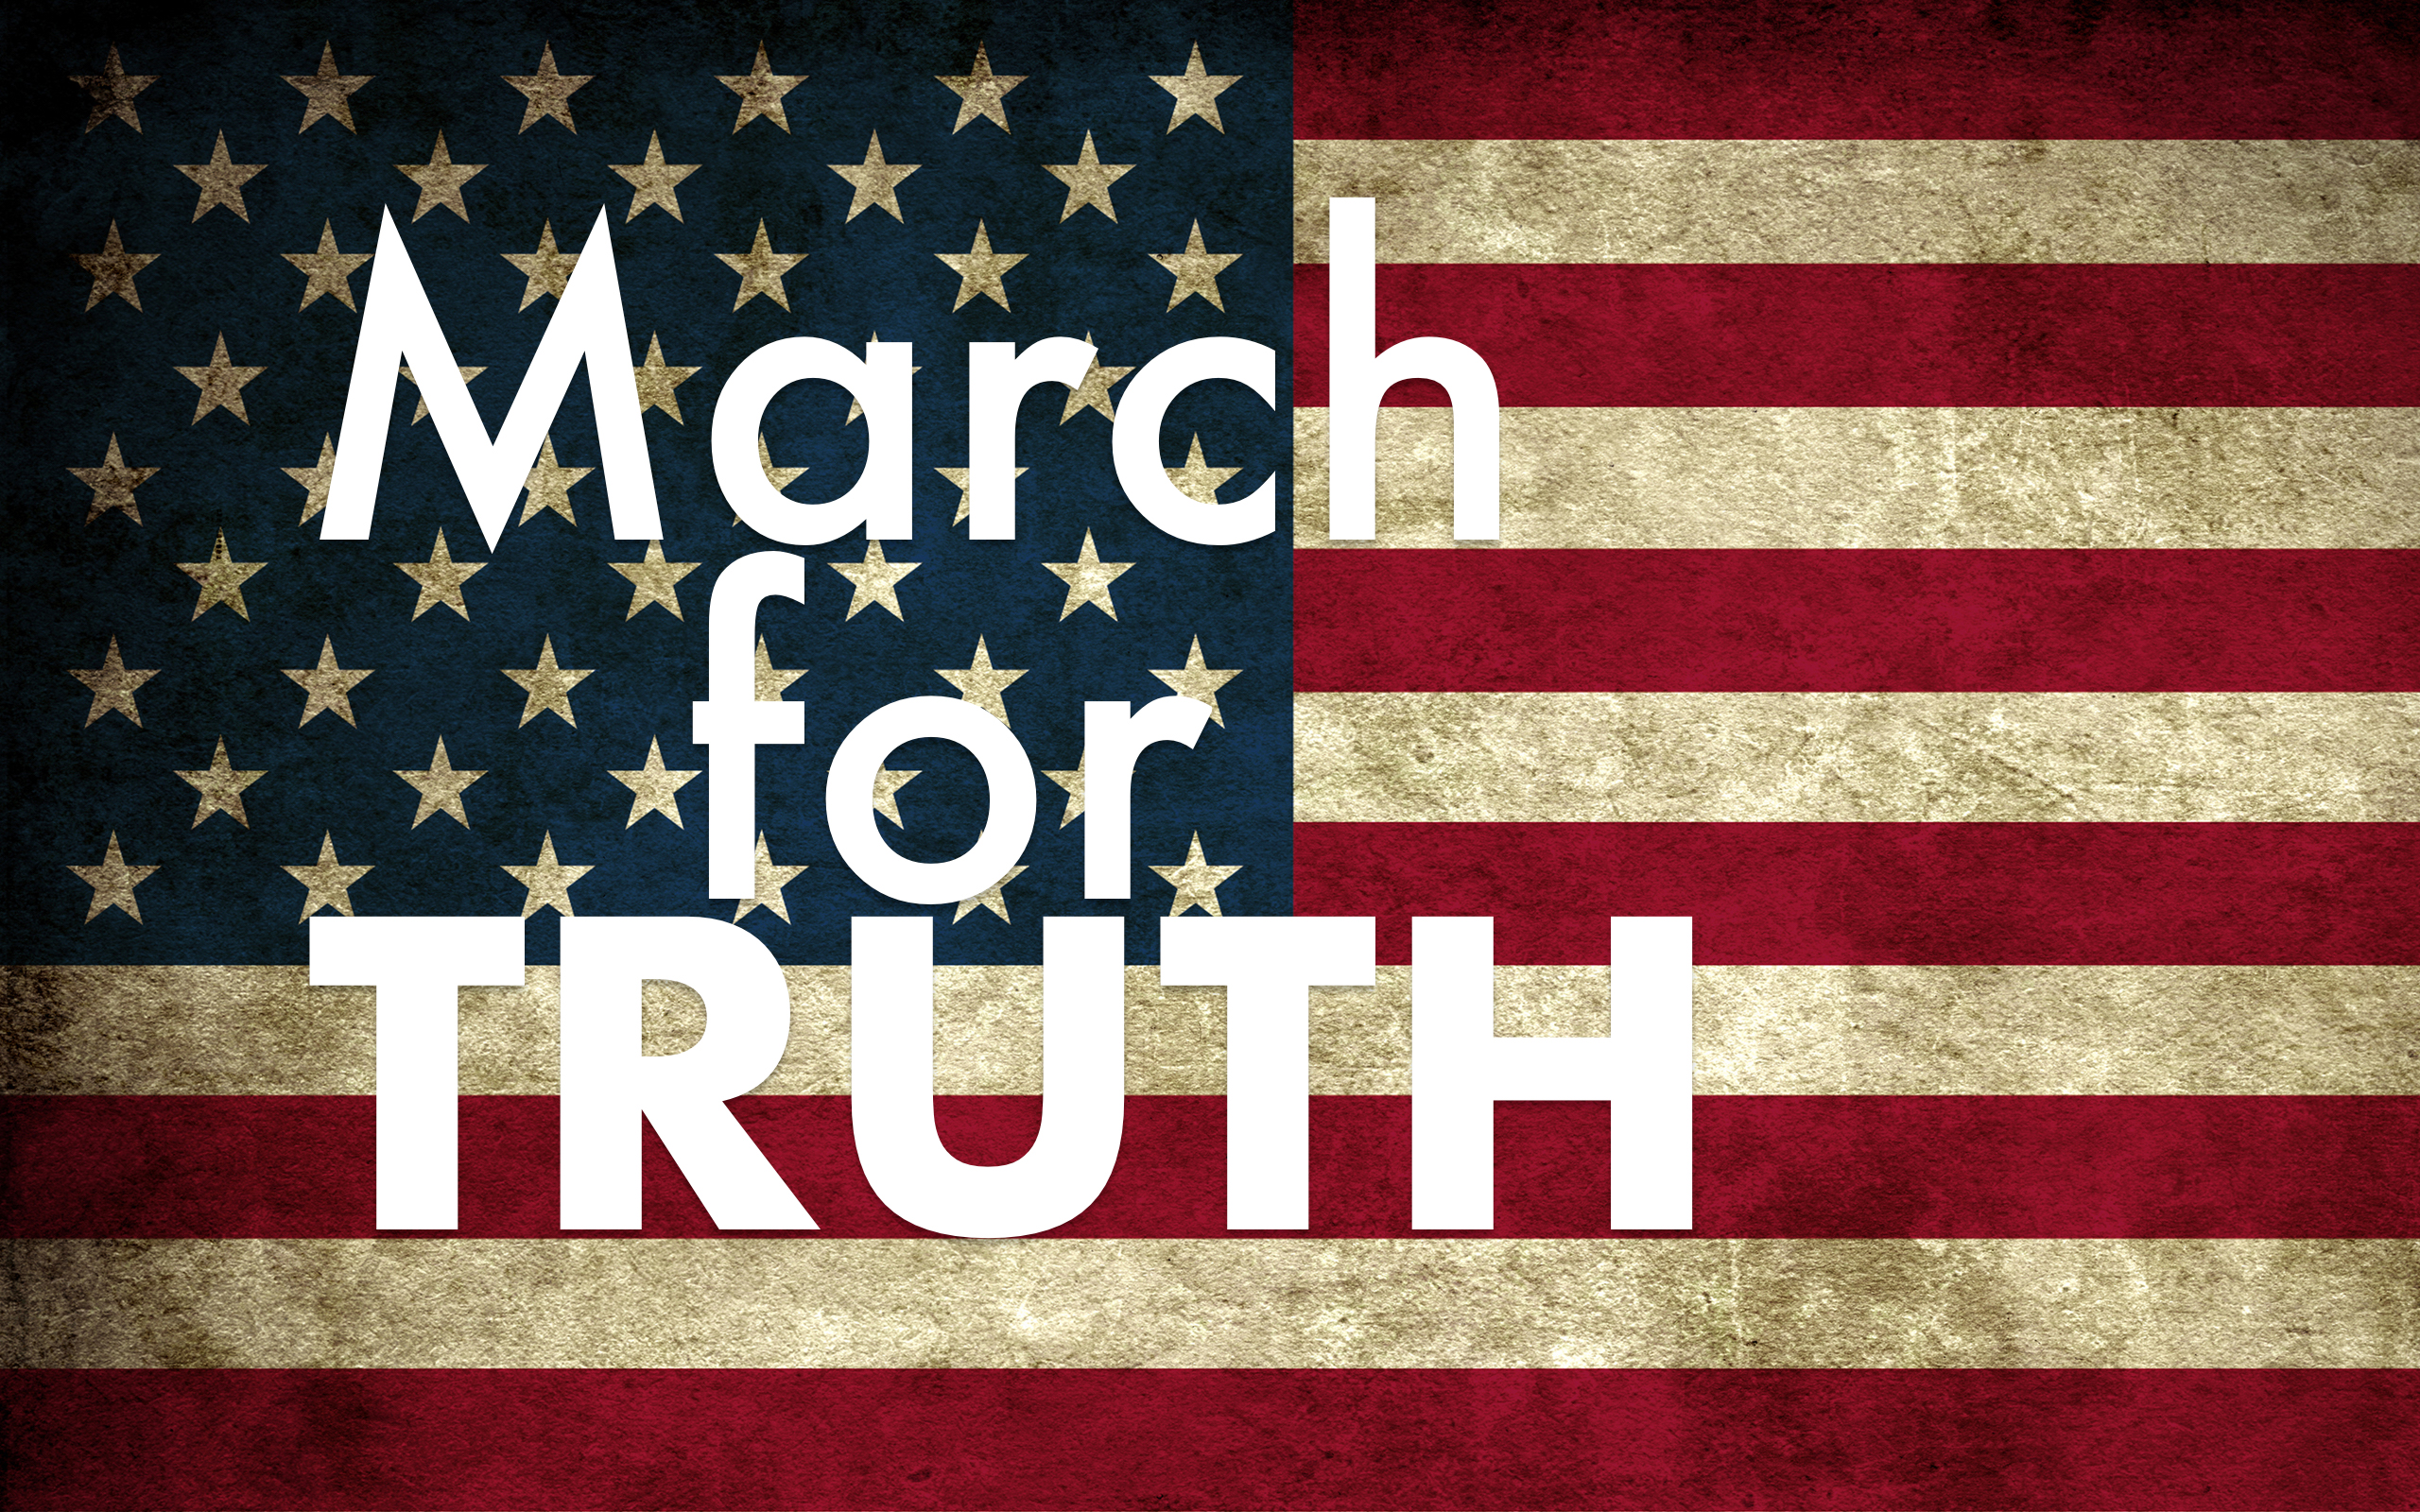 March for Truth on Saturday June 3